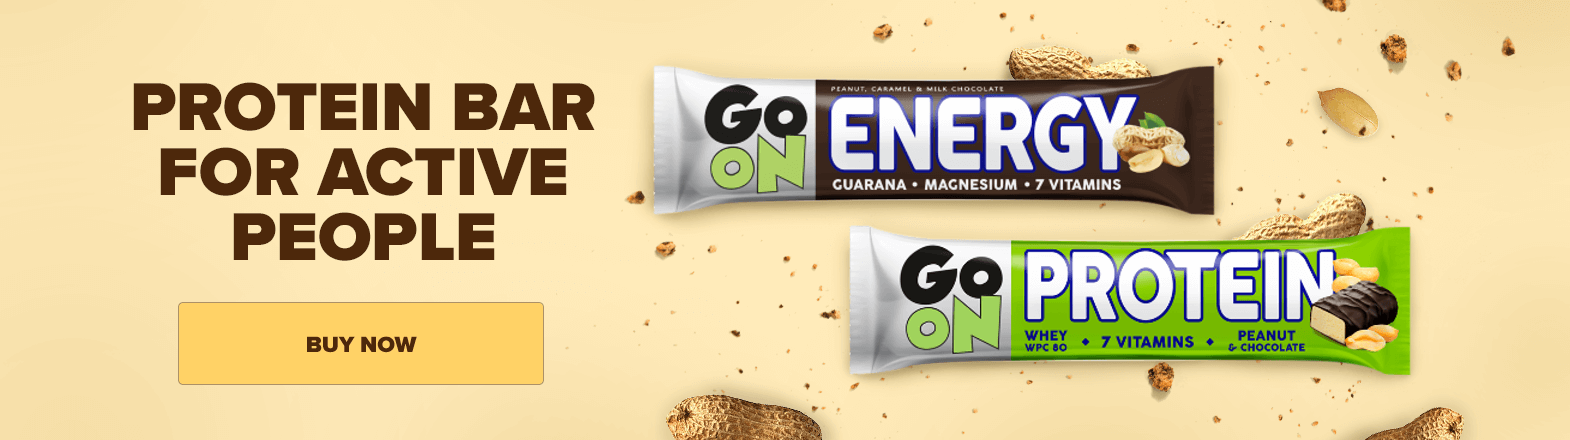 Protein bar for Active People